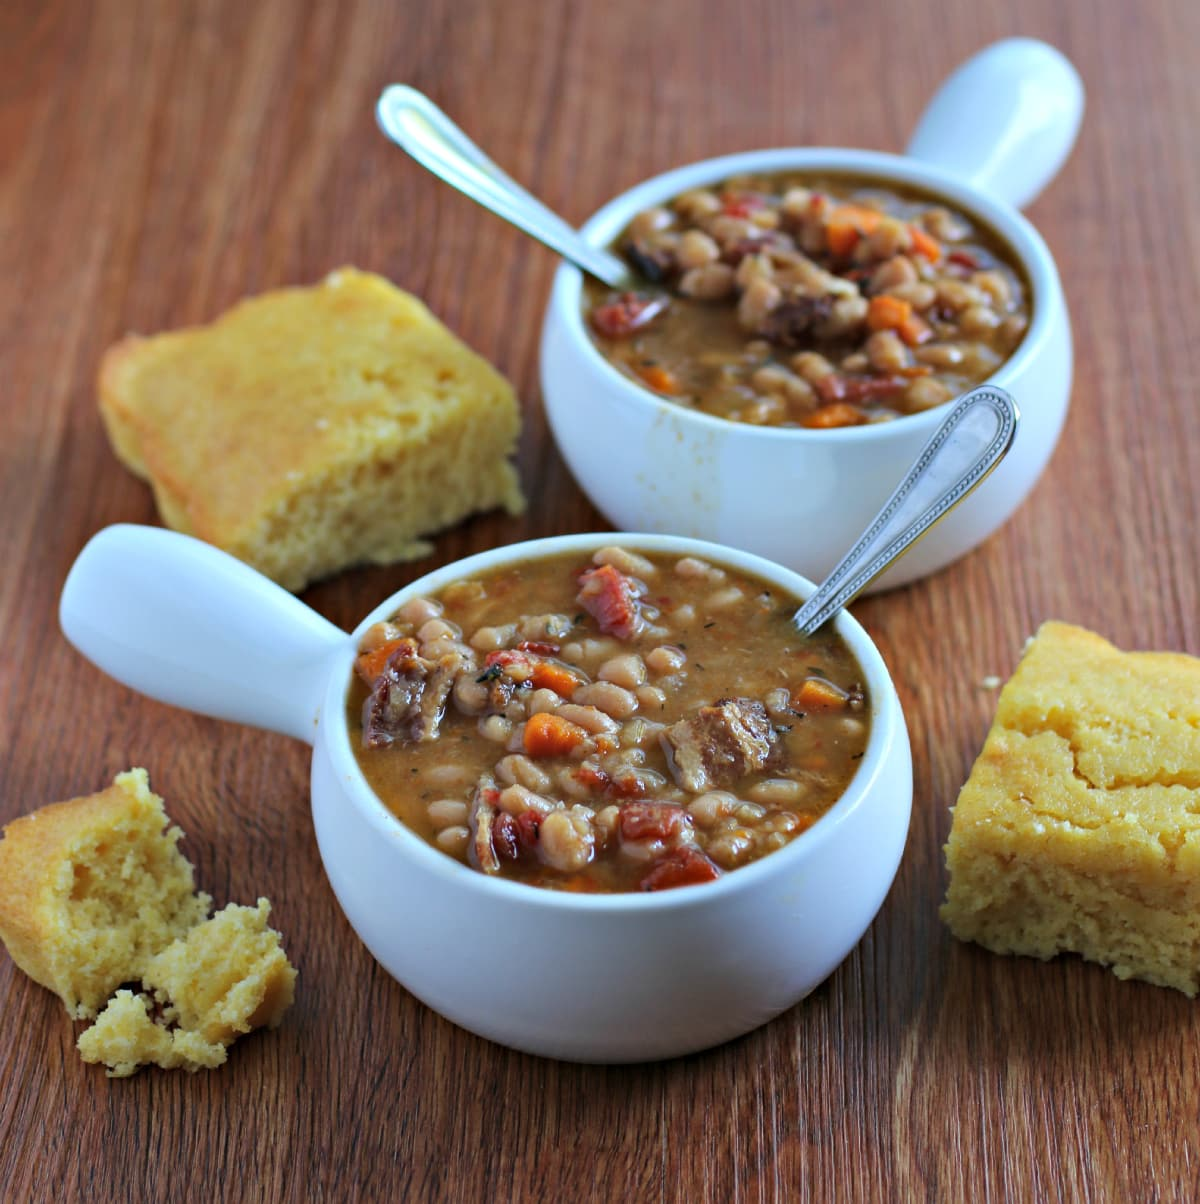 2 bowls of homemade bean and bacon soup with cornbread on side